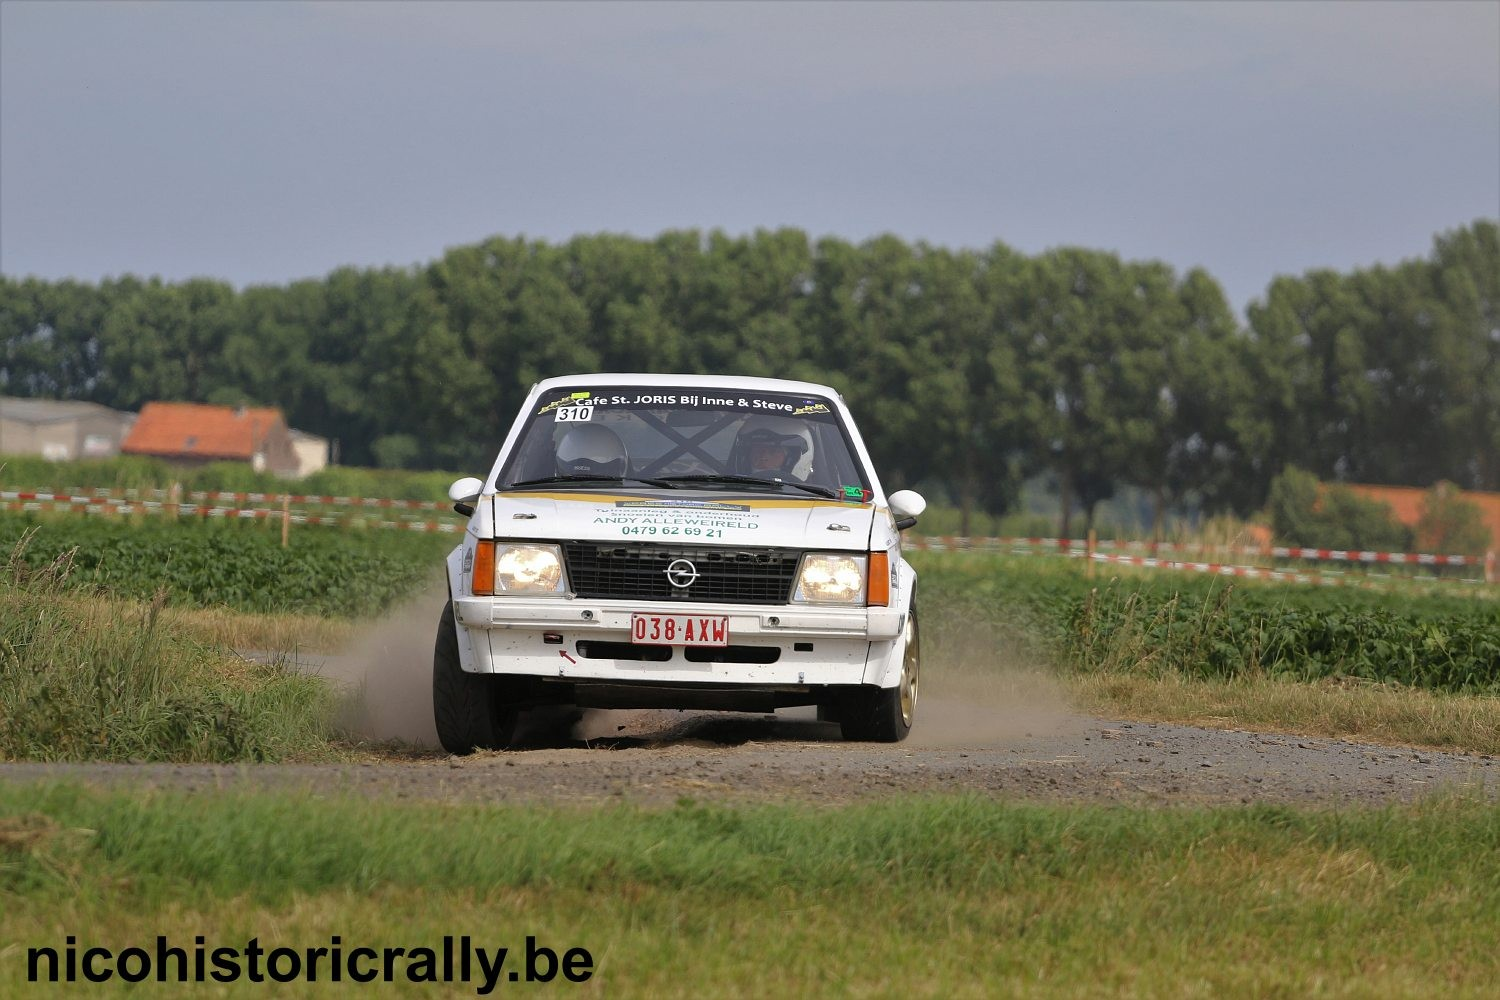 Pascal Clarys in de Ypres Classic Rally.